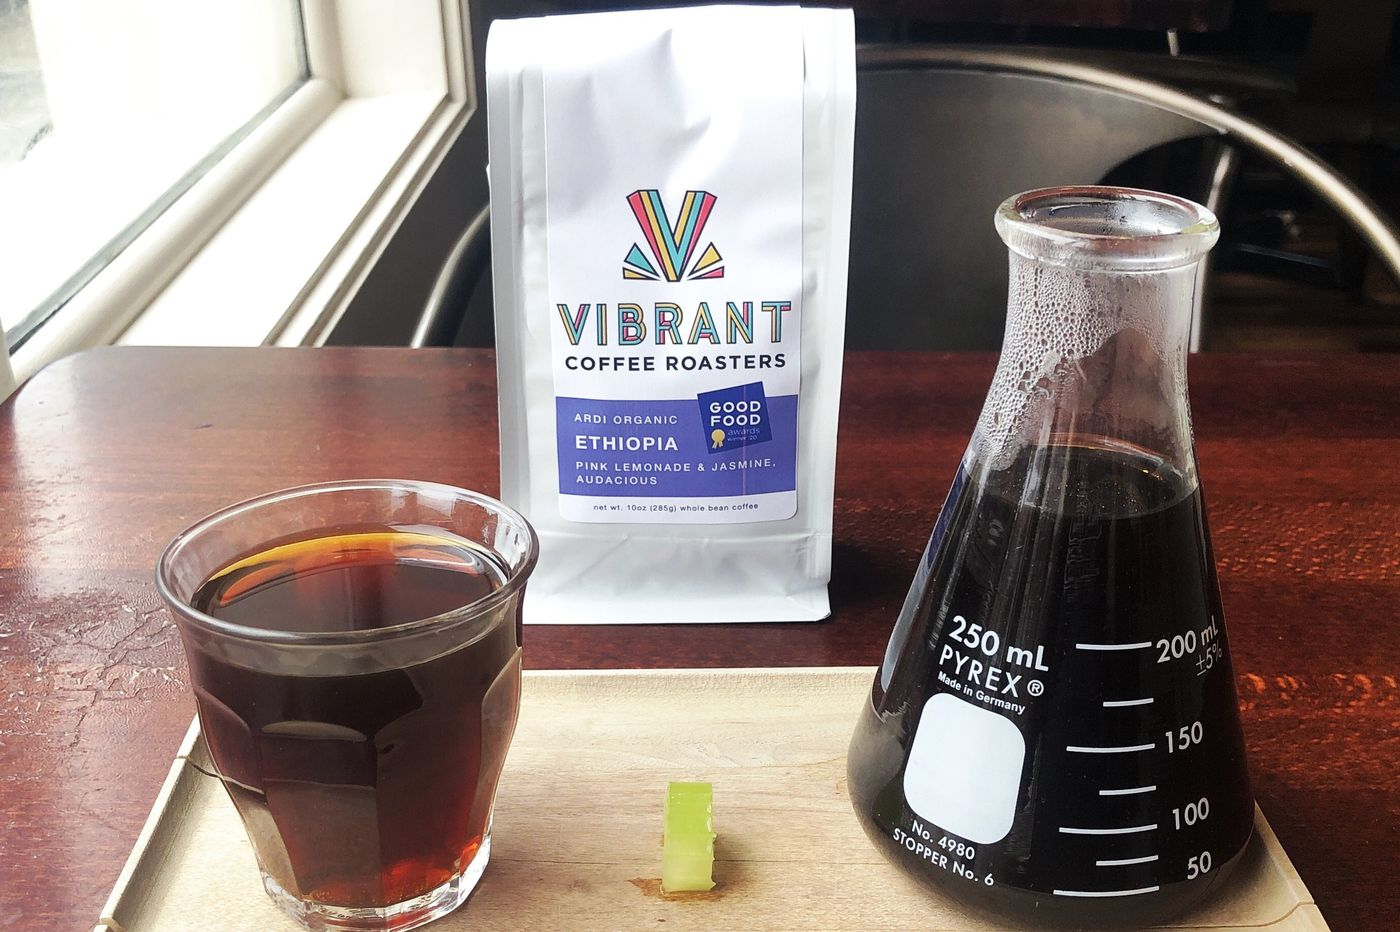 Lansdale's Backyard Beans receives Prestigious 'Good Food Award' For Its Ethiopian Coffee